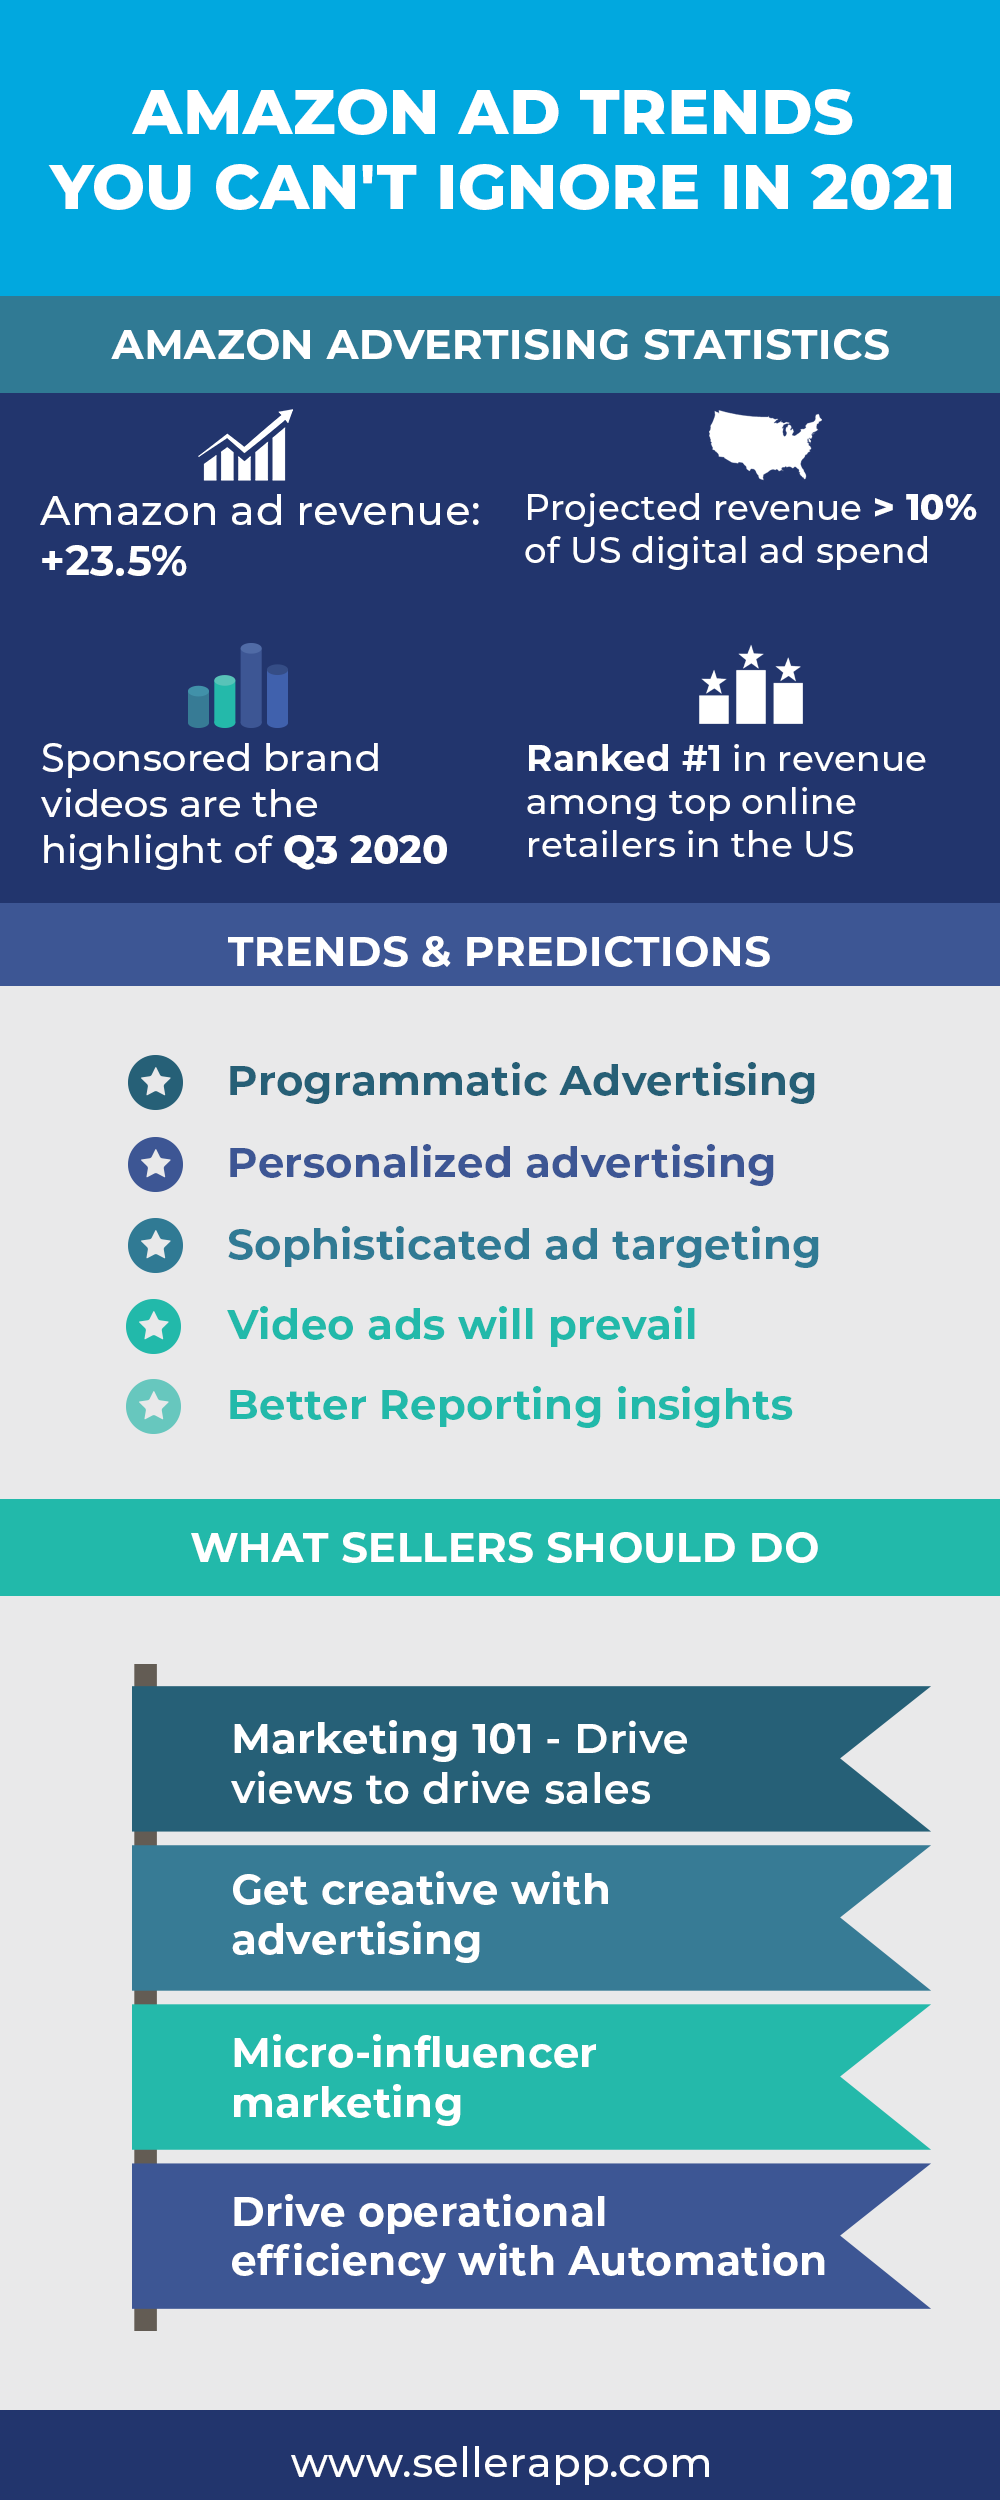 Amazon advertising statistics, trends, and predictions in 2021